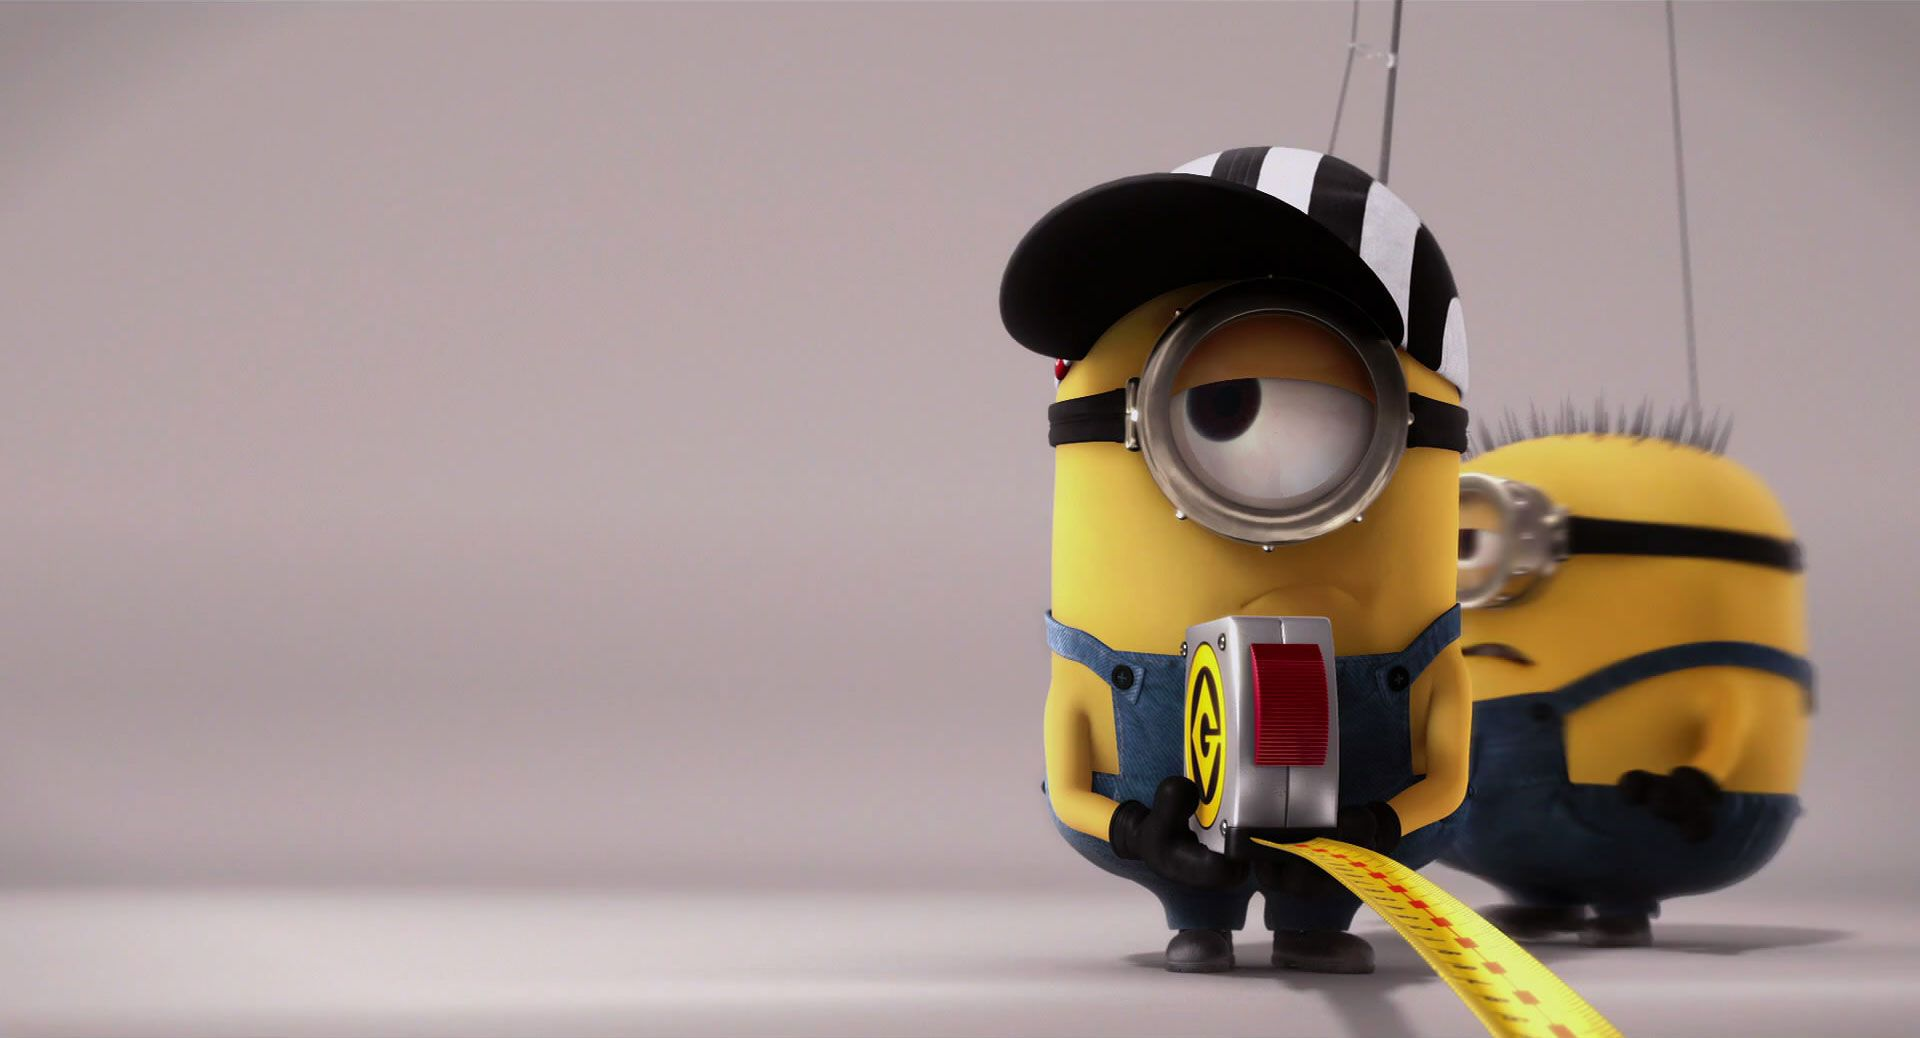 Marvelous Funny Minion Design Inspirations